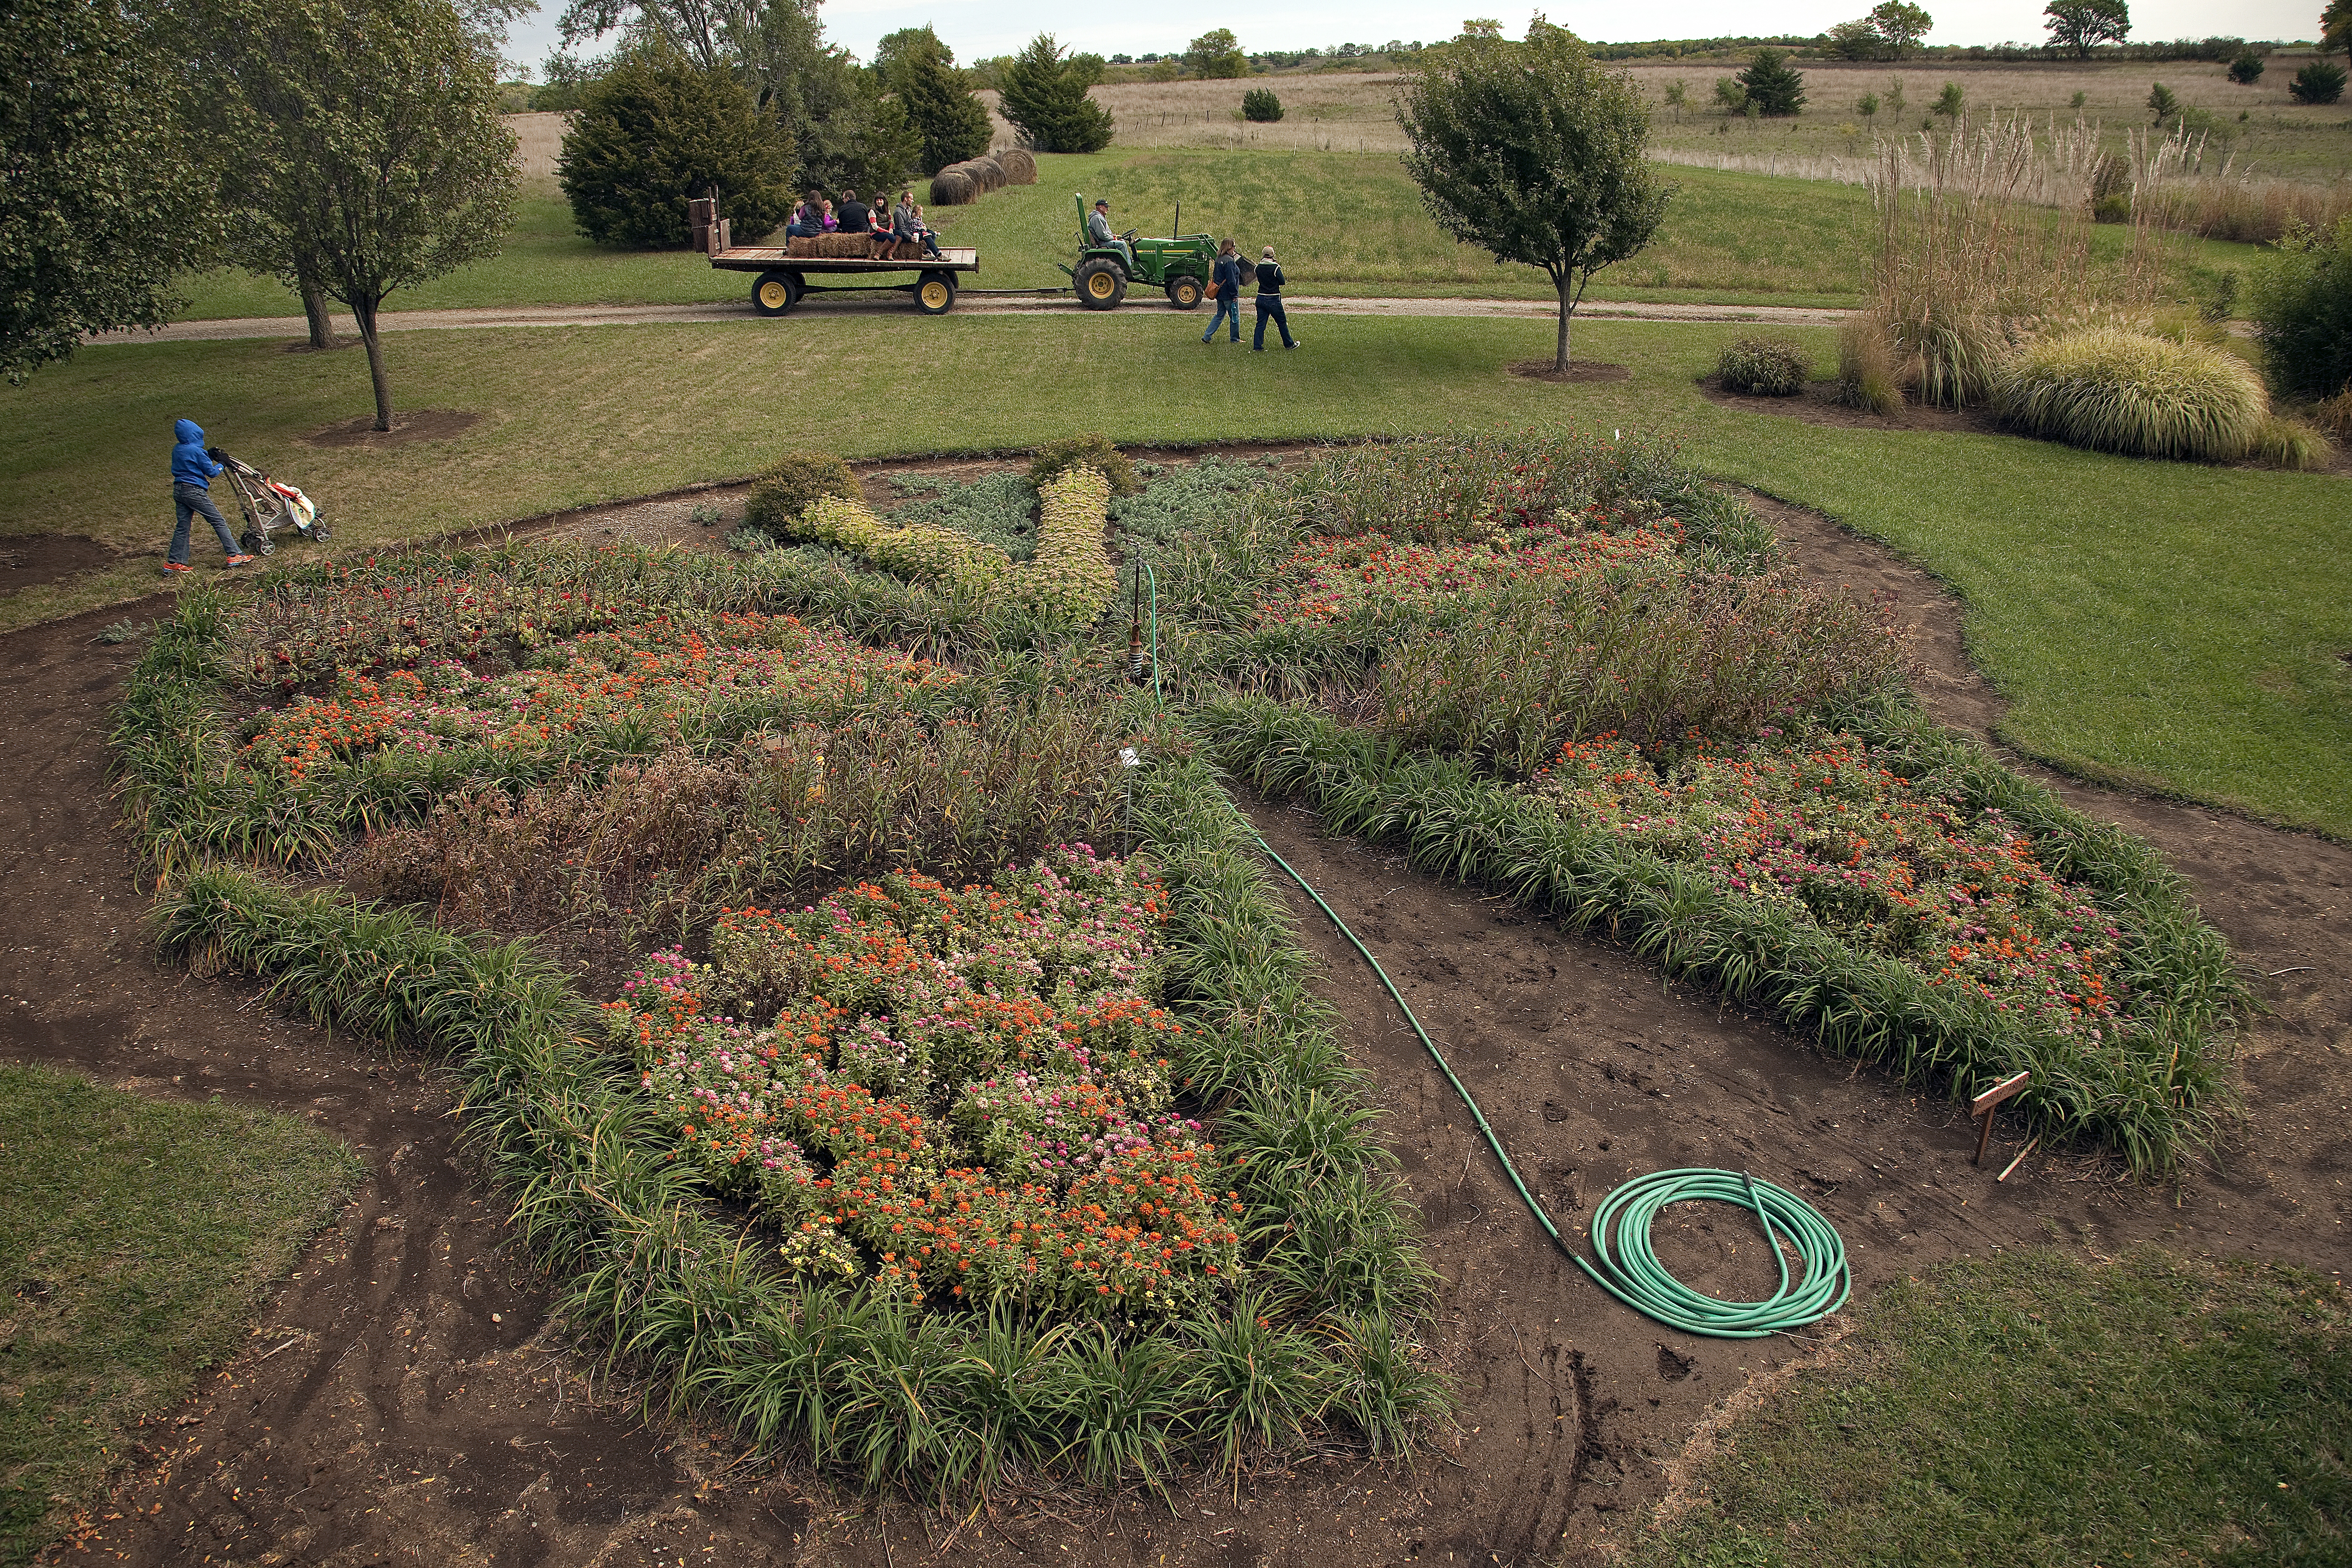 Garden Variety: Upcoming Farm Tour highlights local agriculture ...